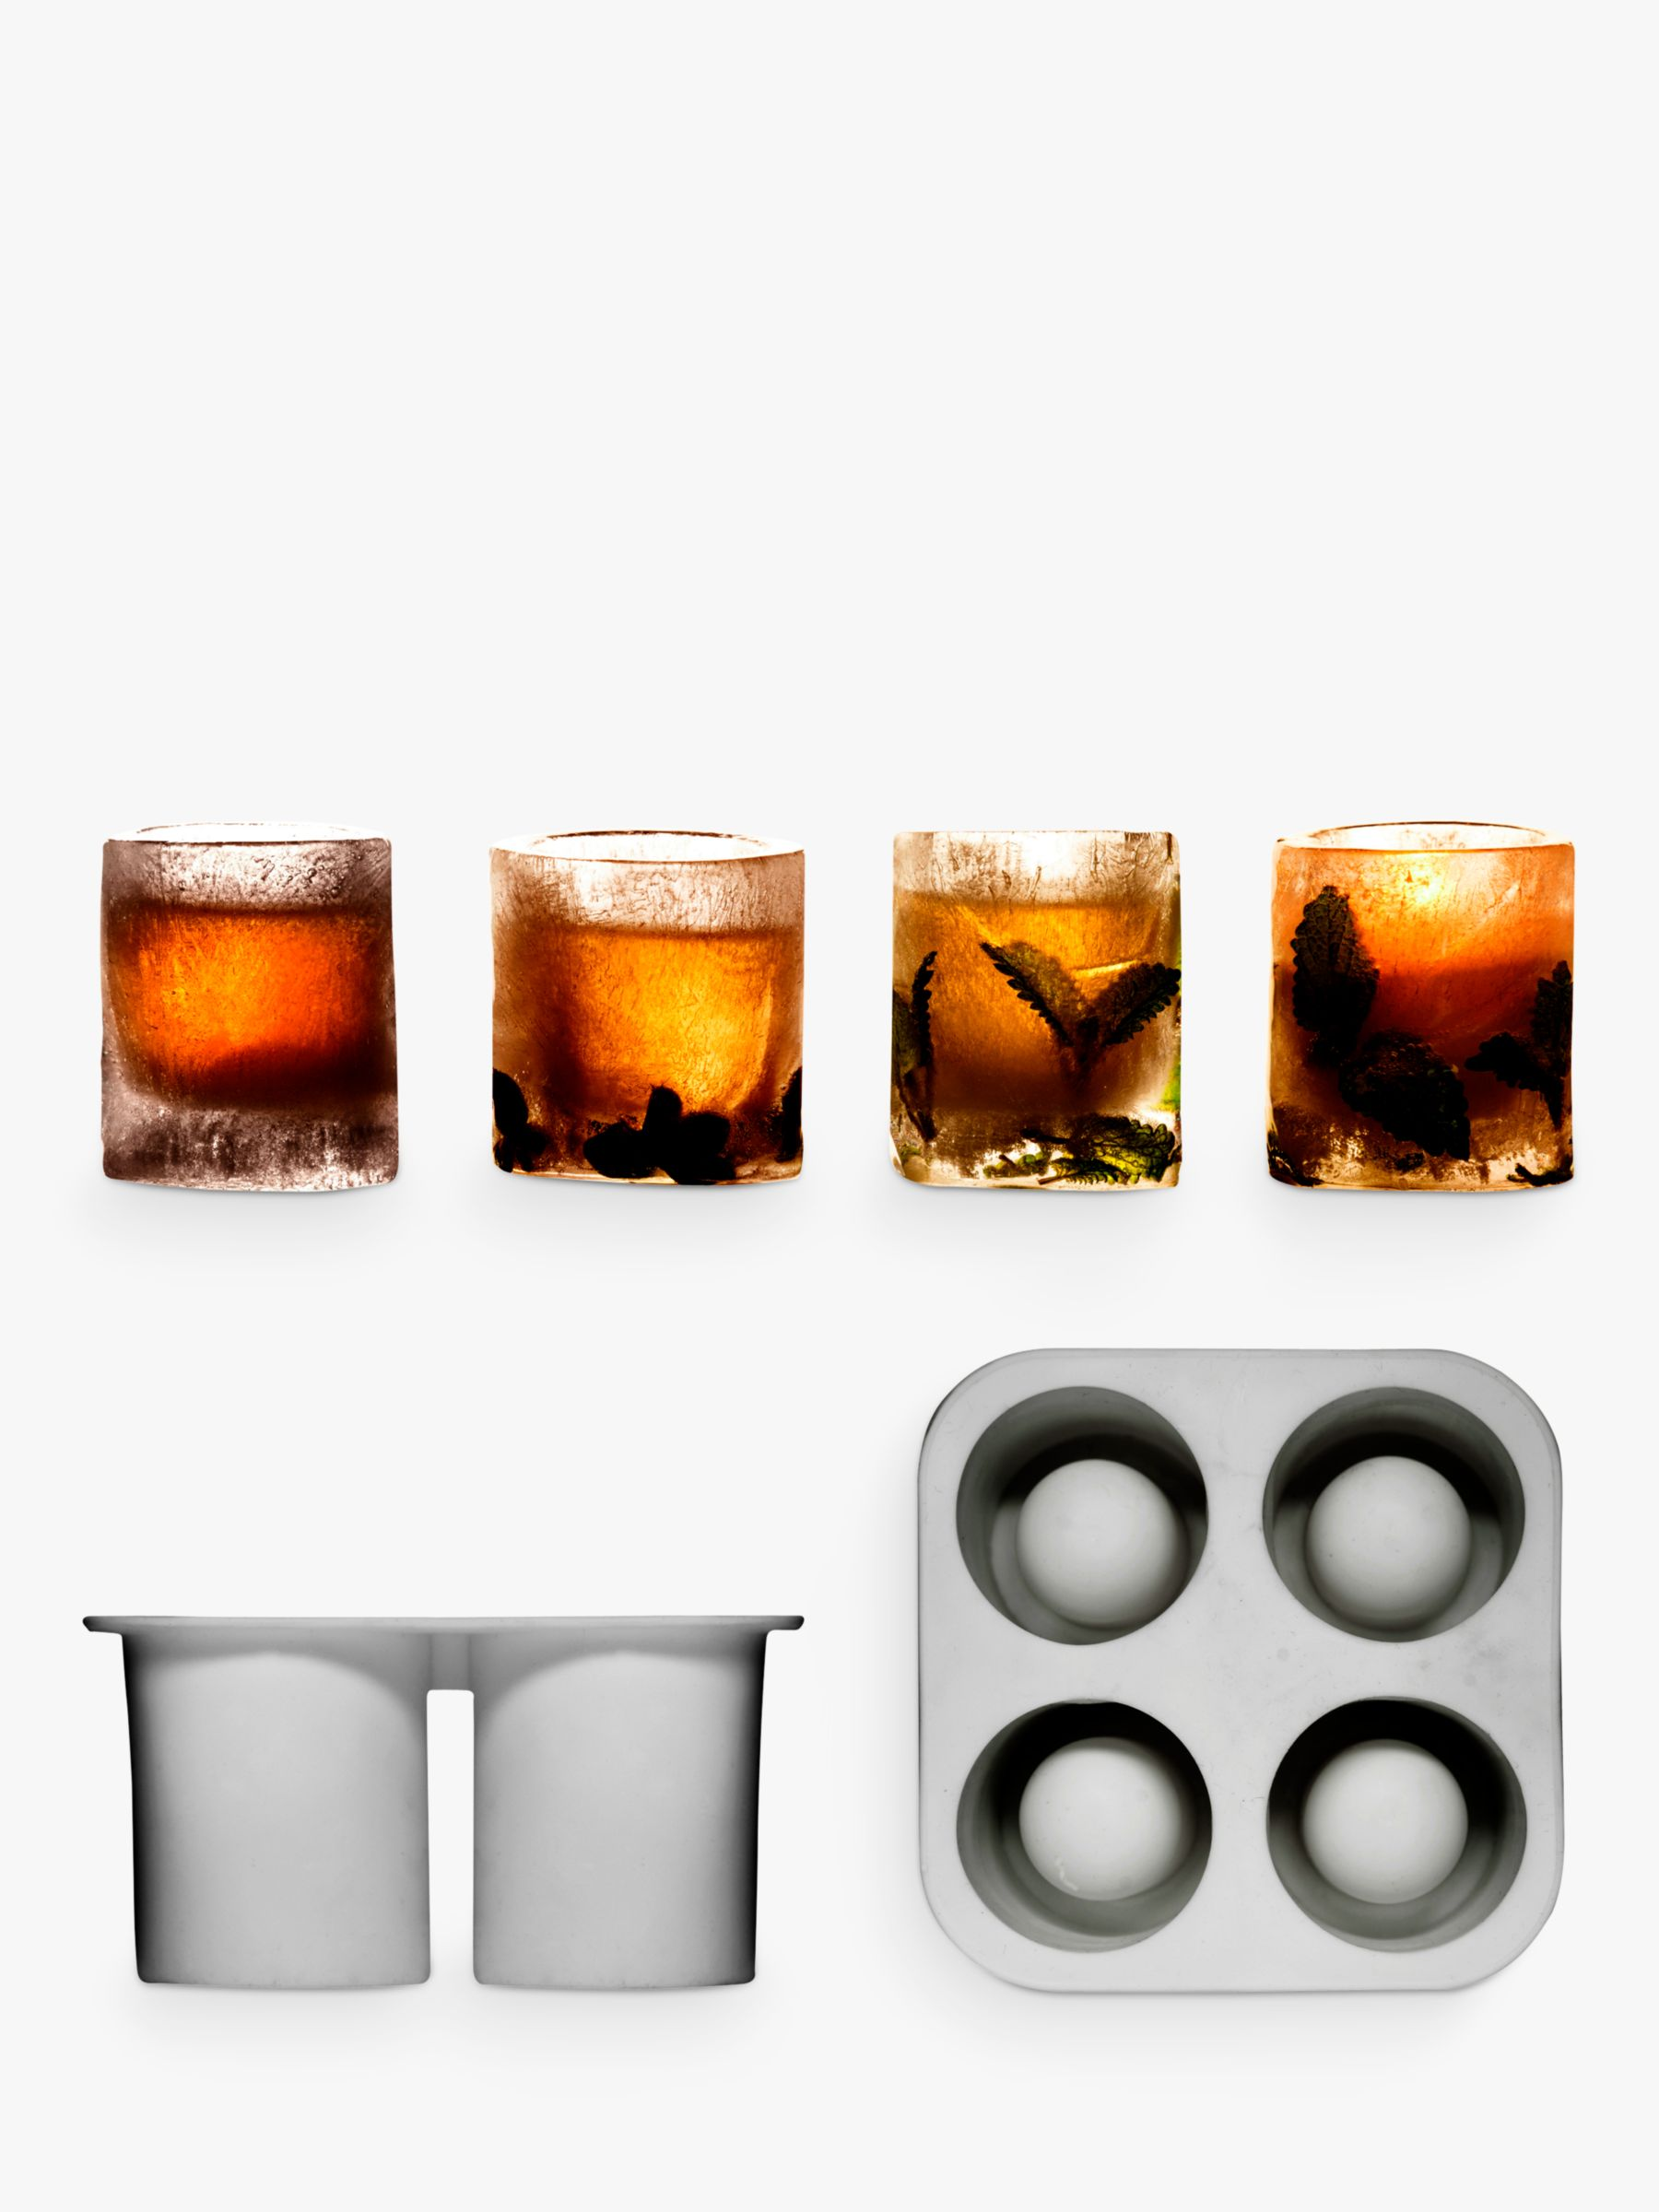 Sagaform Sagaform Ice Shot Glass Mould, Set of 4, Clear